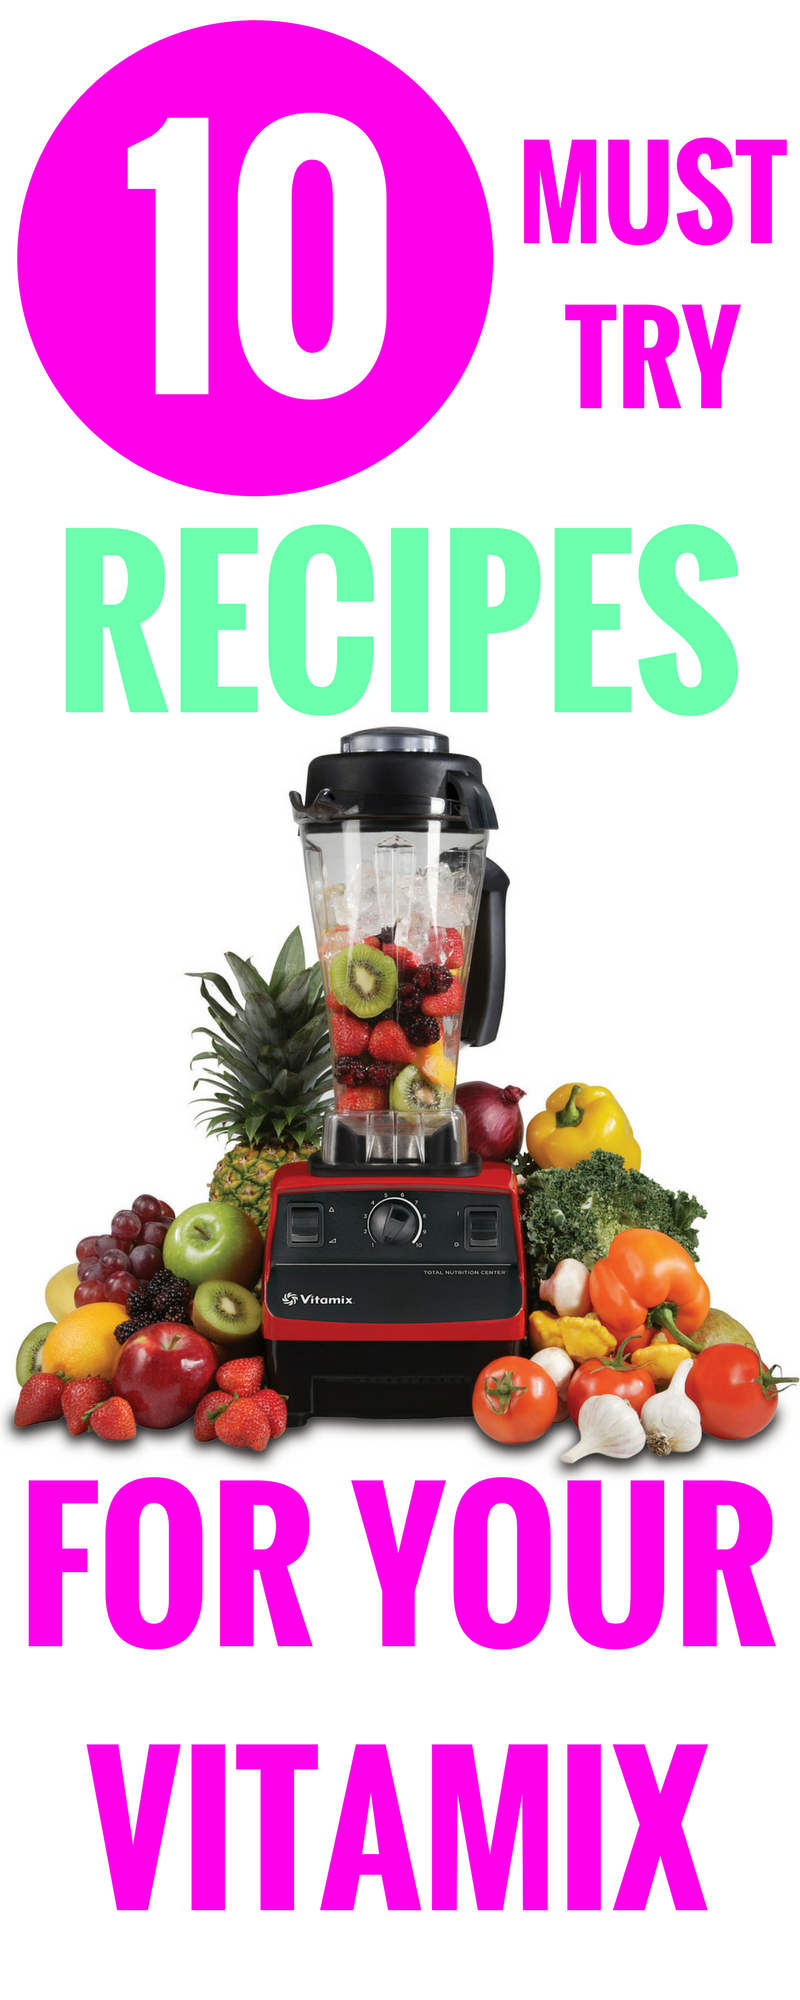 10 Must Try Recipes For Your Vitamix Vitamix Recipes